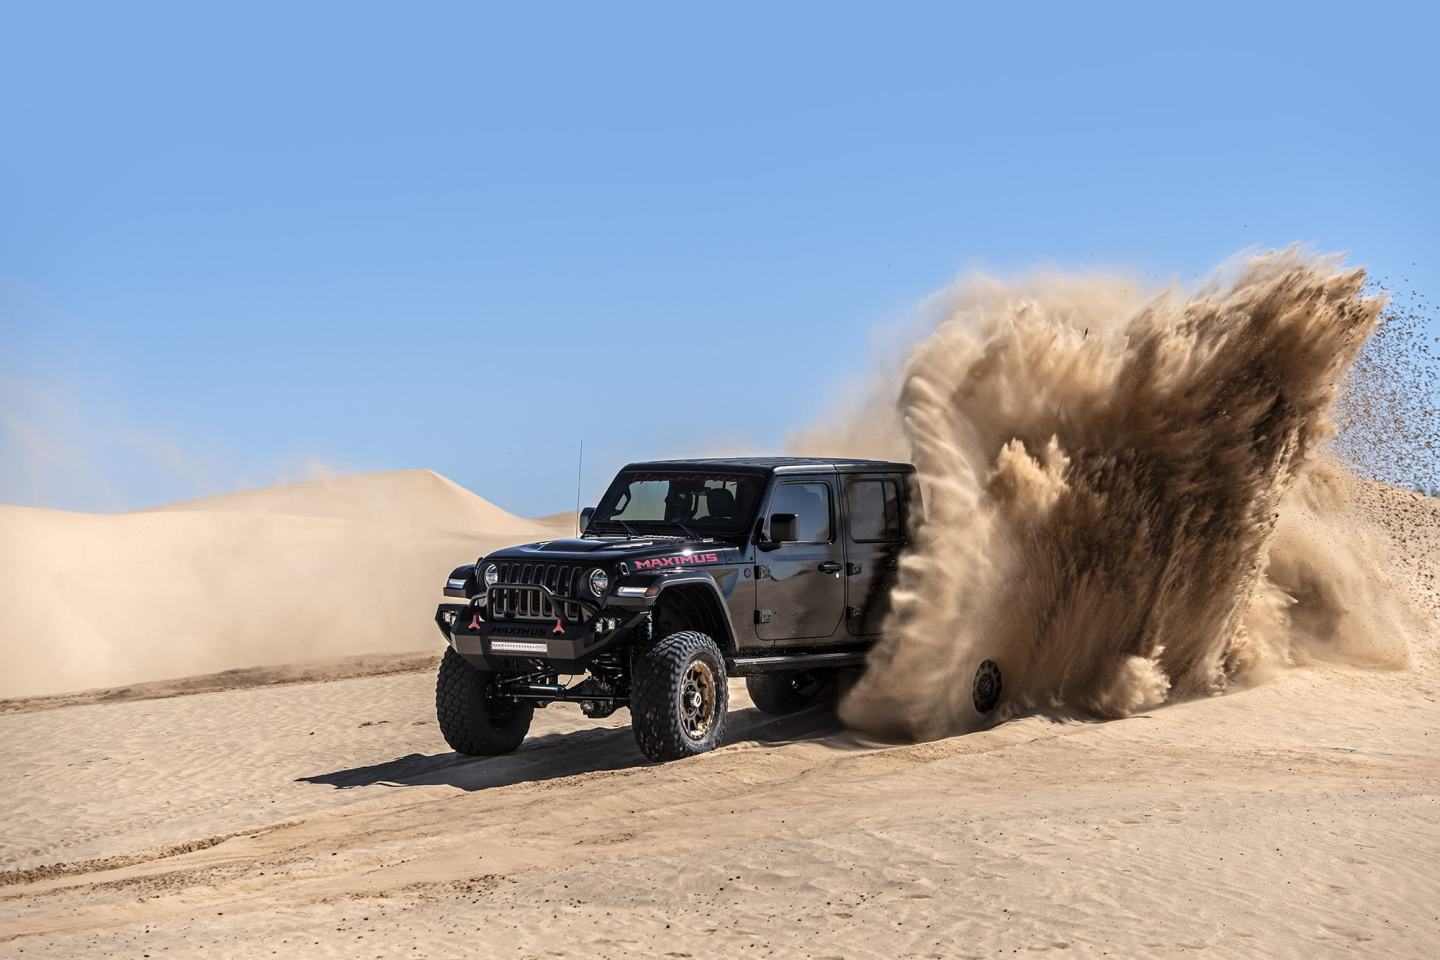 With 1,000 hp and 933 lb-ft, the Maximus muscles its way through the shifty sand